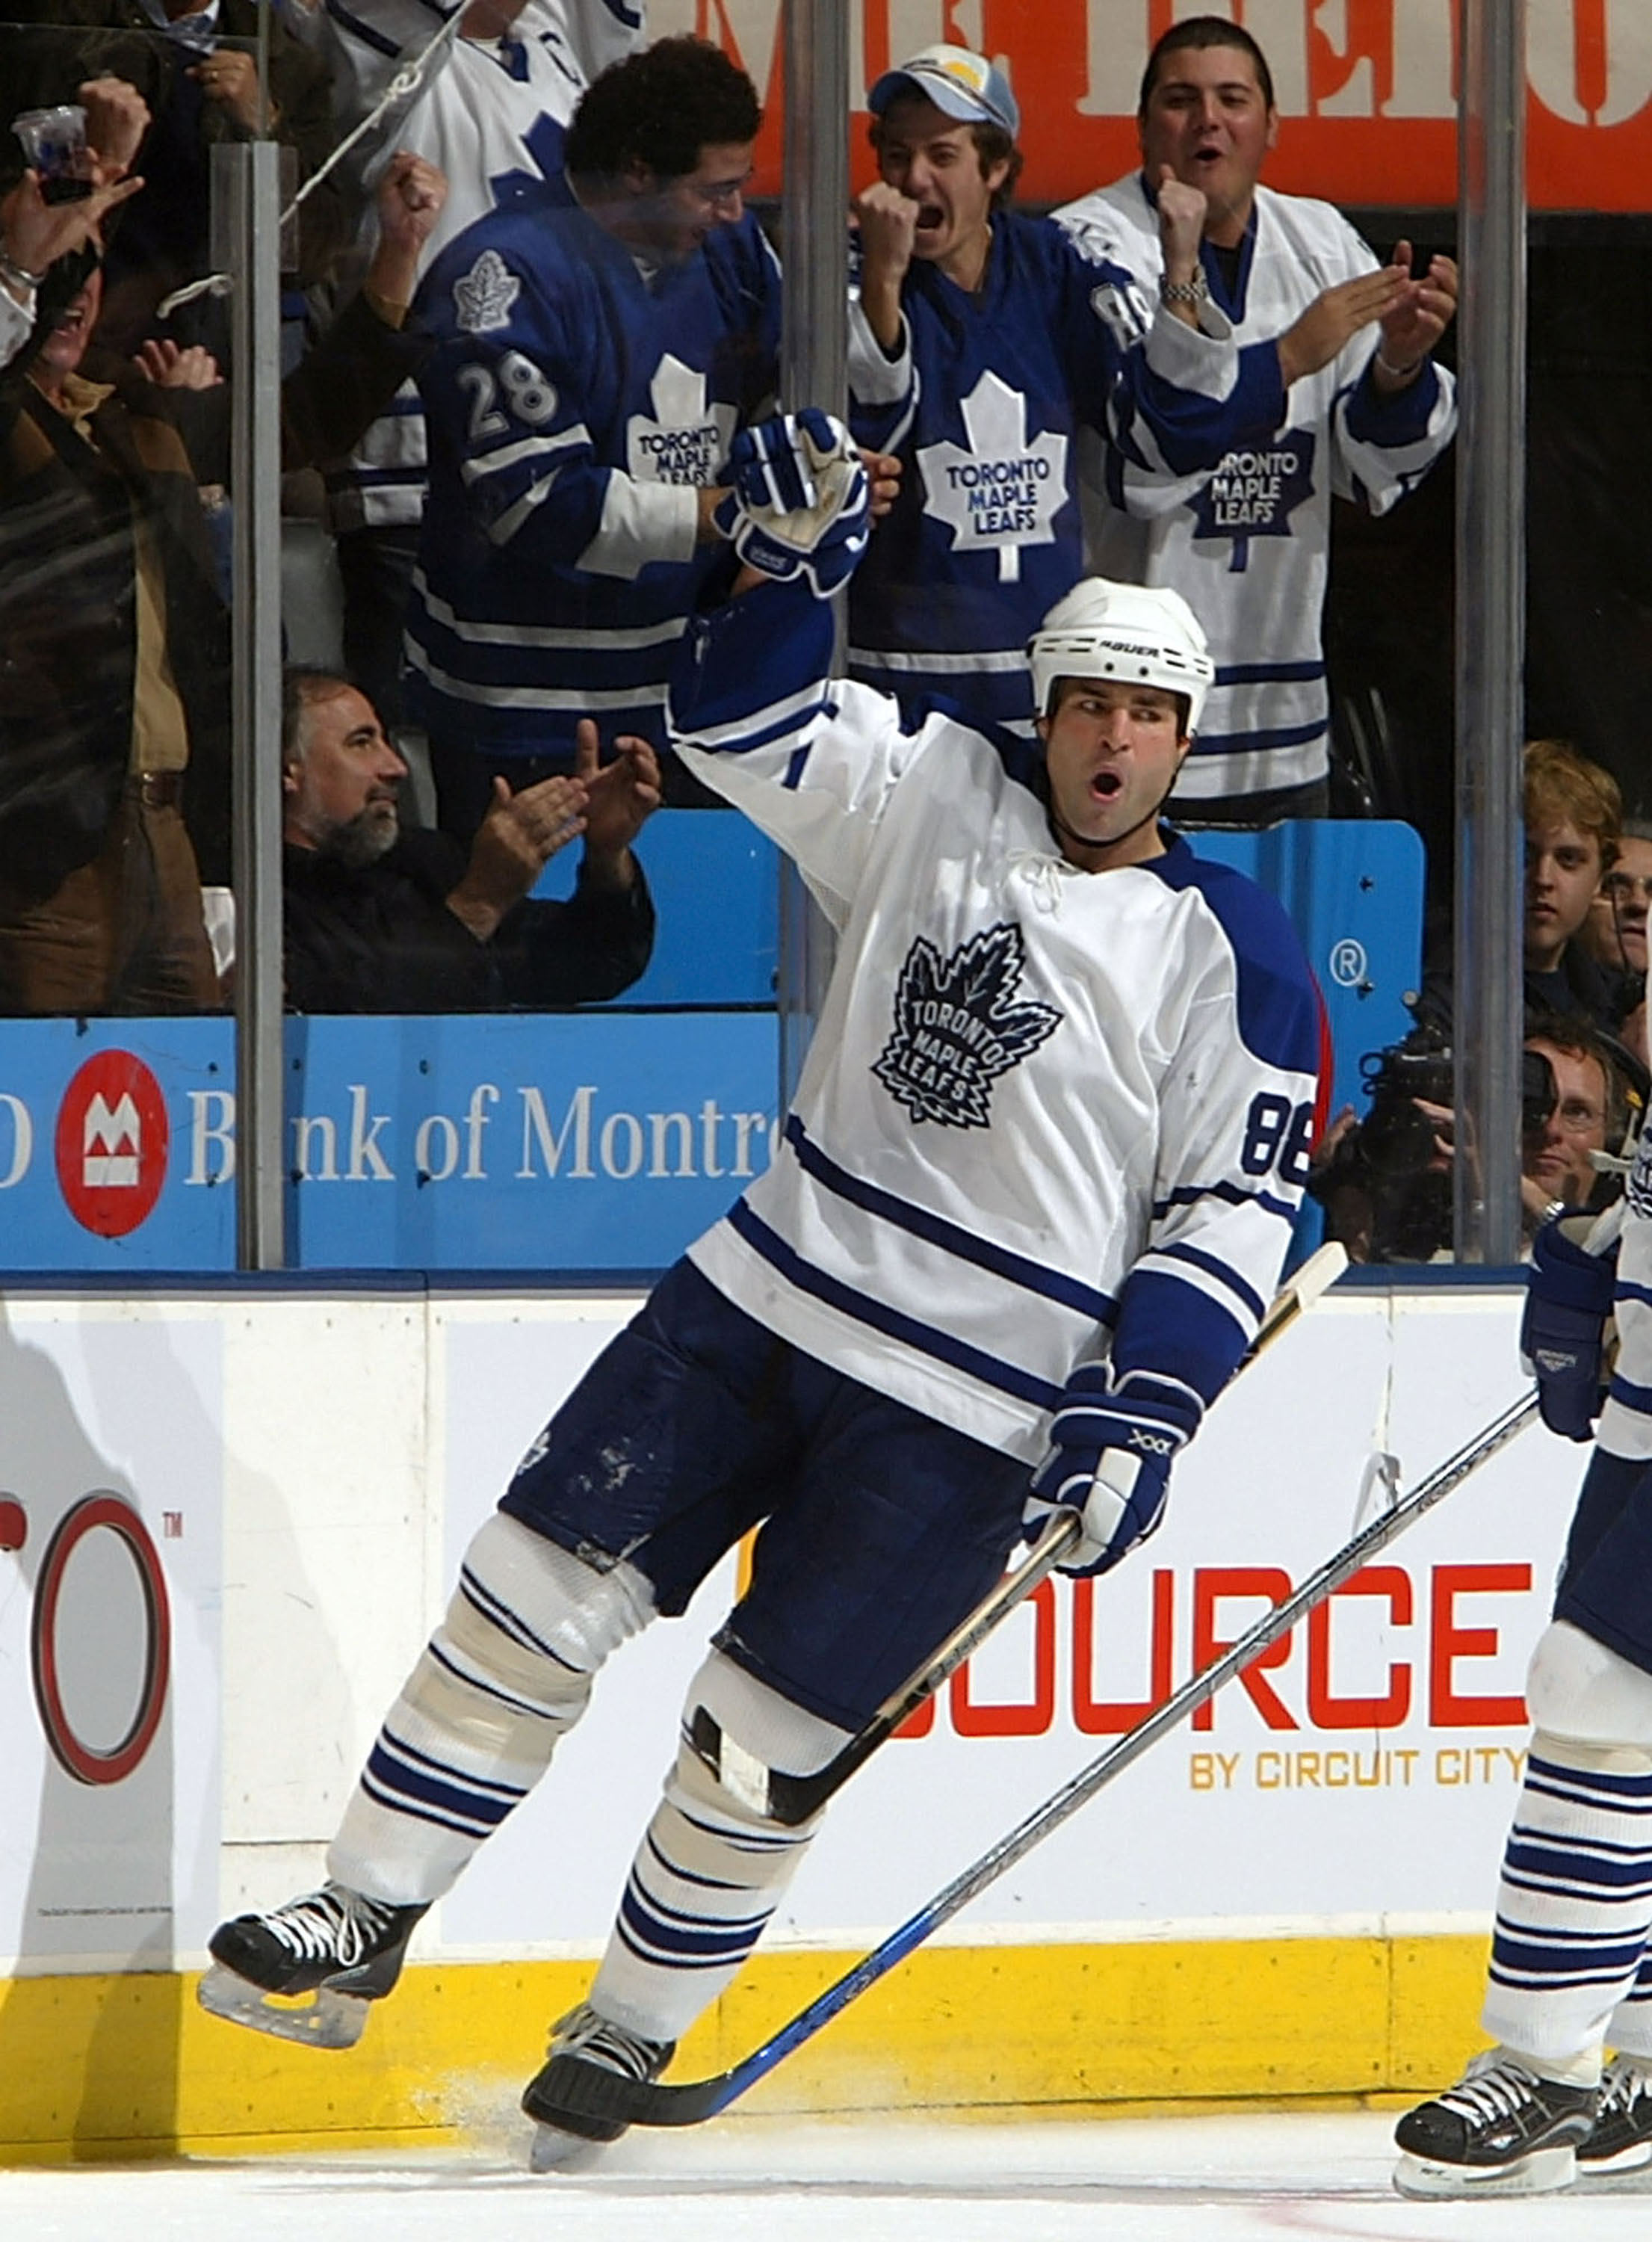 TORONTO - OCTOBER 11: Eric Lindros #88 of the Toronto Maple Leafs celebrates his goal against the Philadelphia Flyers during their NHL game on October 11, 2005 at the Air Canada Centre in Toronto, Ontario. The Leafs beat the Flyers 4-2. (Photo By Dave Sandford/Getty Images)